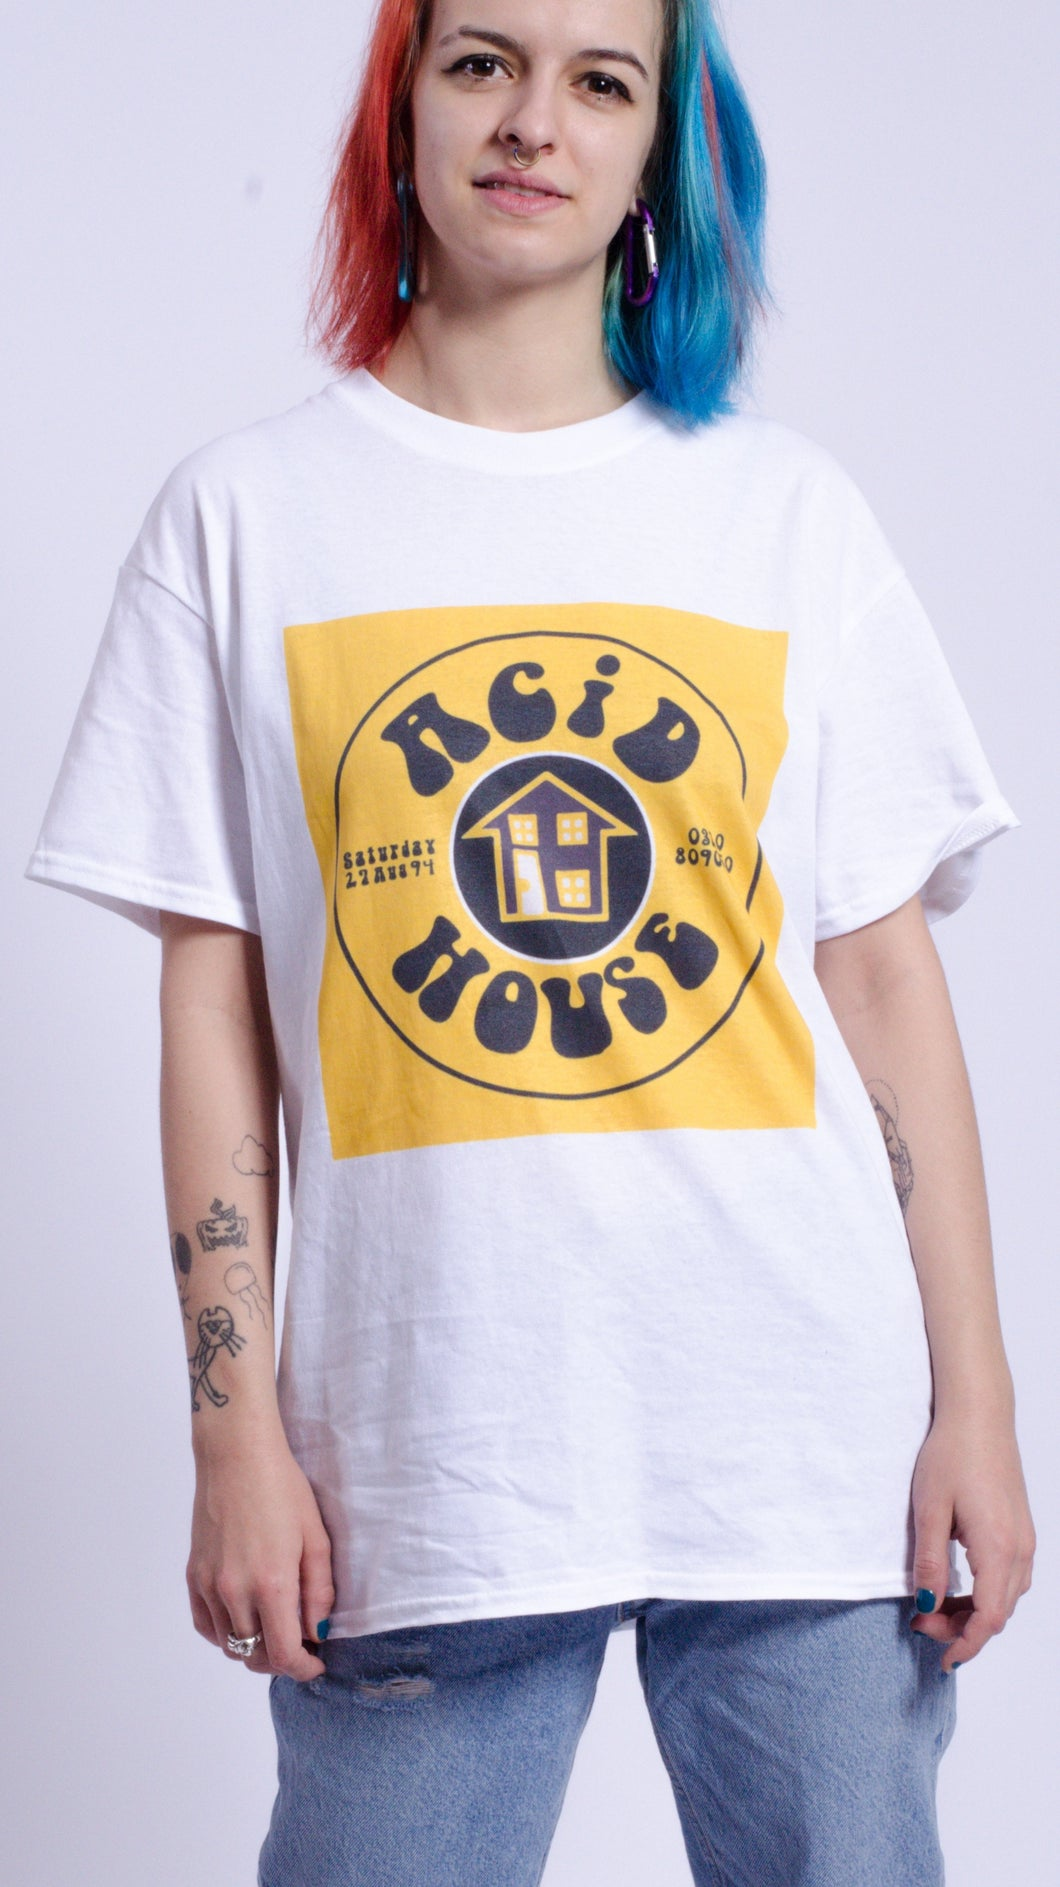 Acid House Short Sleeve Tee White (BOGO50%OFF)